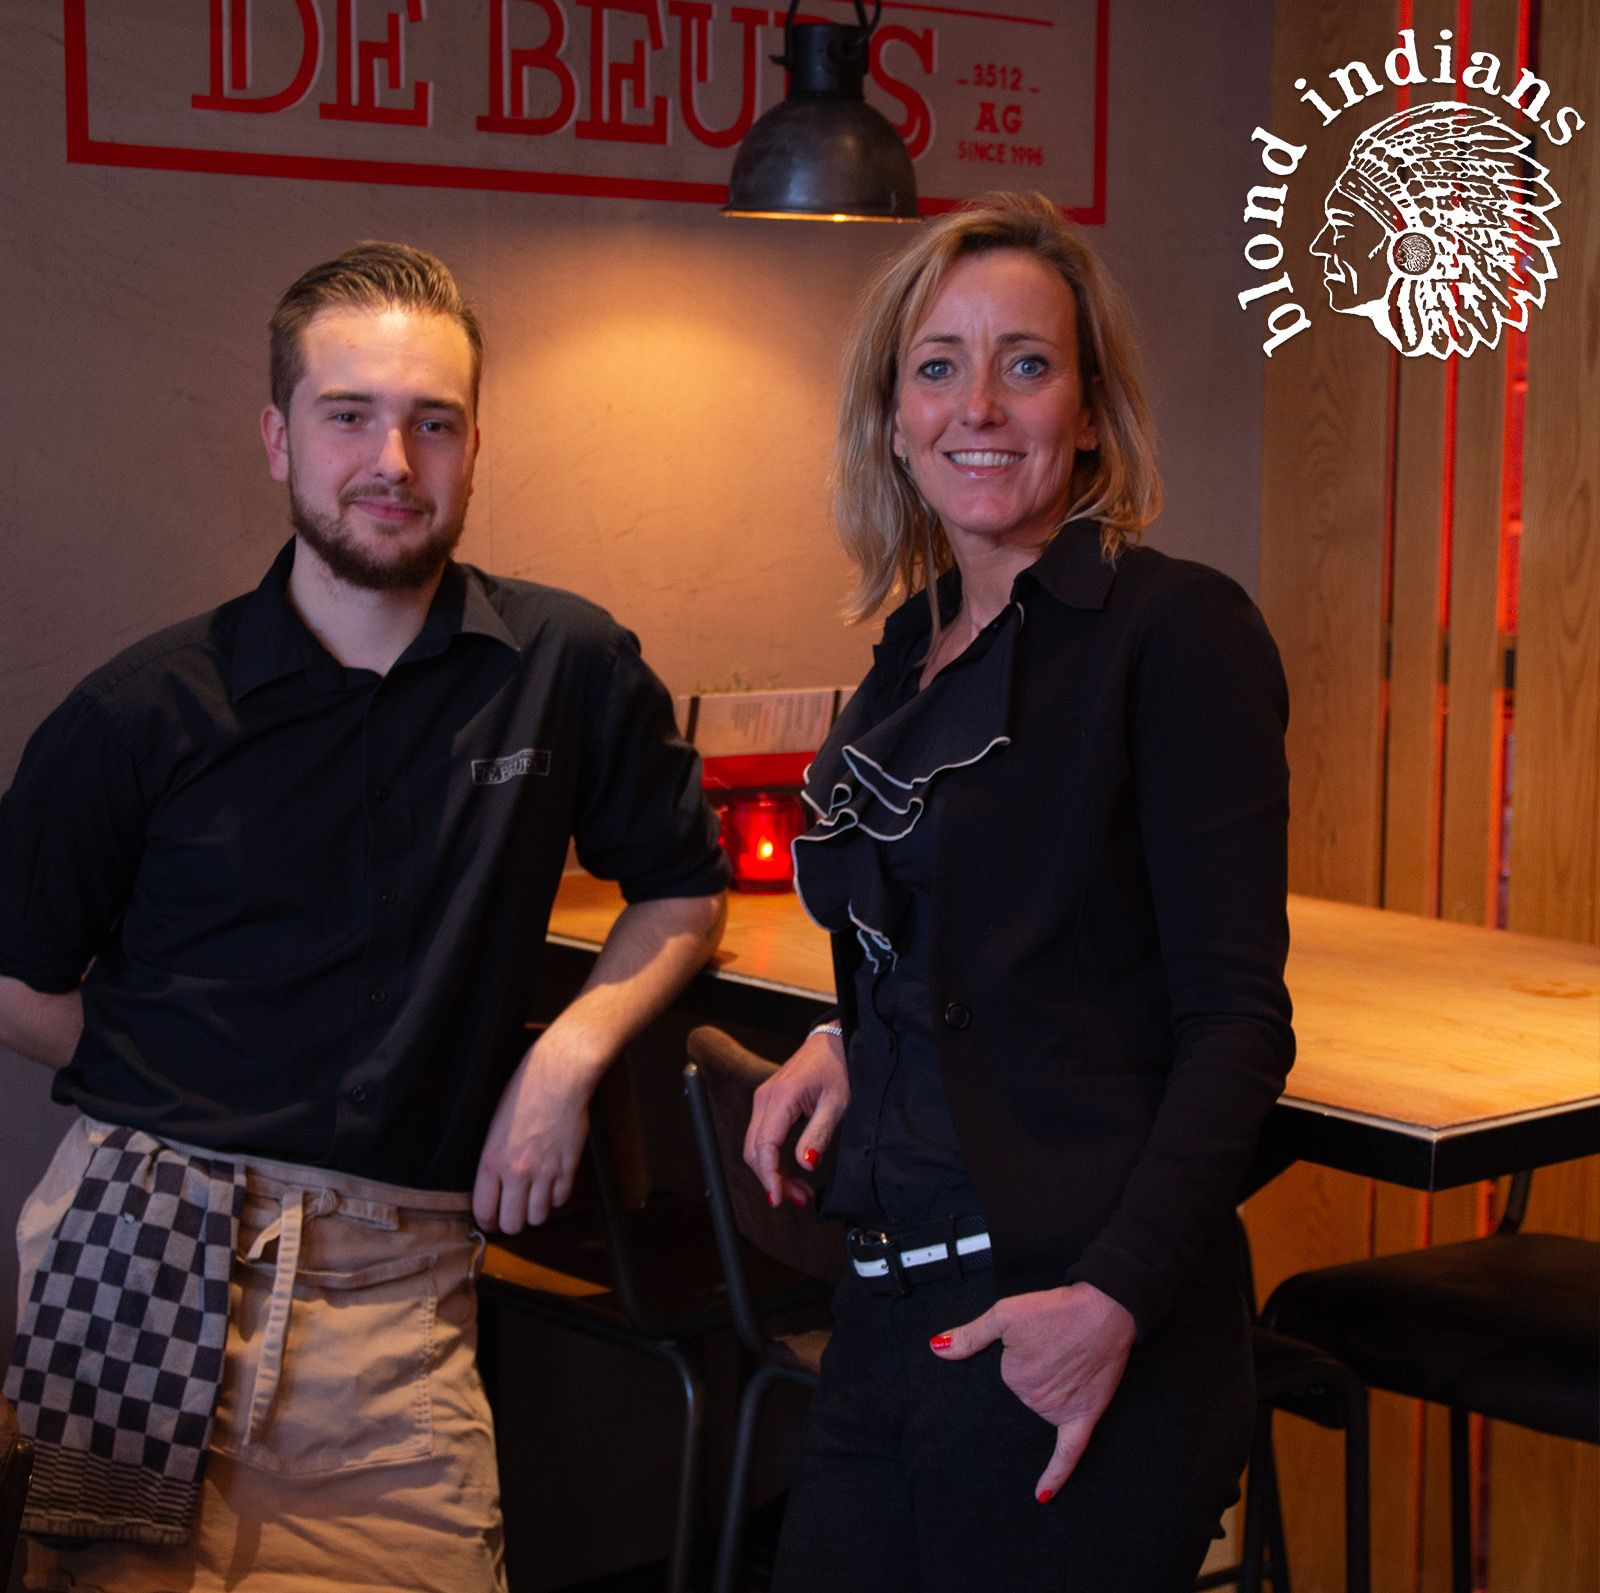 De Beurs Utrecht Check this picture from our Blond Indians chieftess Janneke and Jelle, working at De Beurs in the city centre of Utrecht and obviously looking cool wearing a Blond Indians apron & shirt!